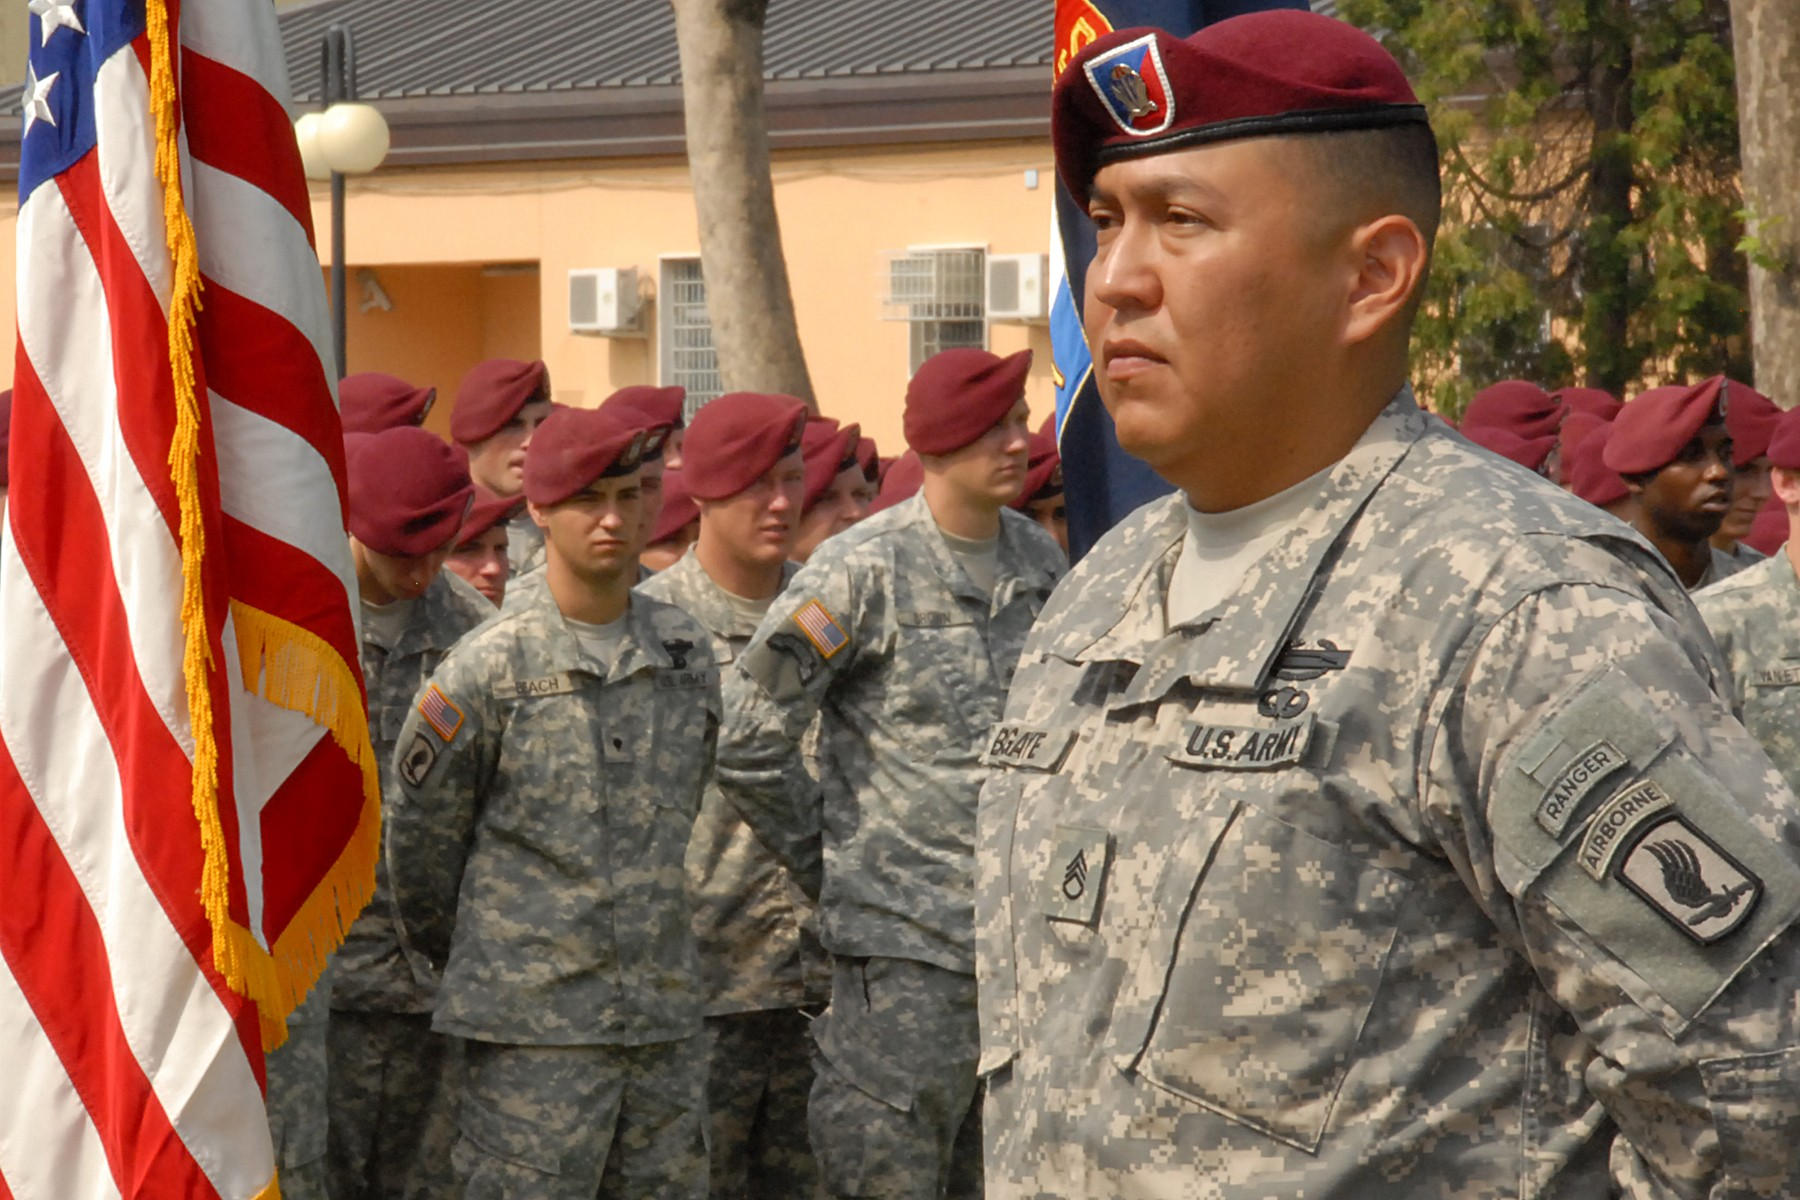 American Indians and Alaskan Natives in the U.S. Army | The United States Army